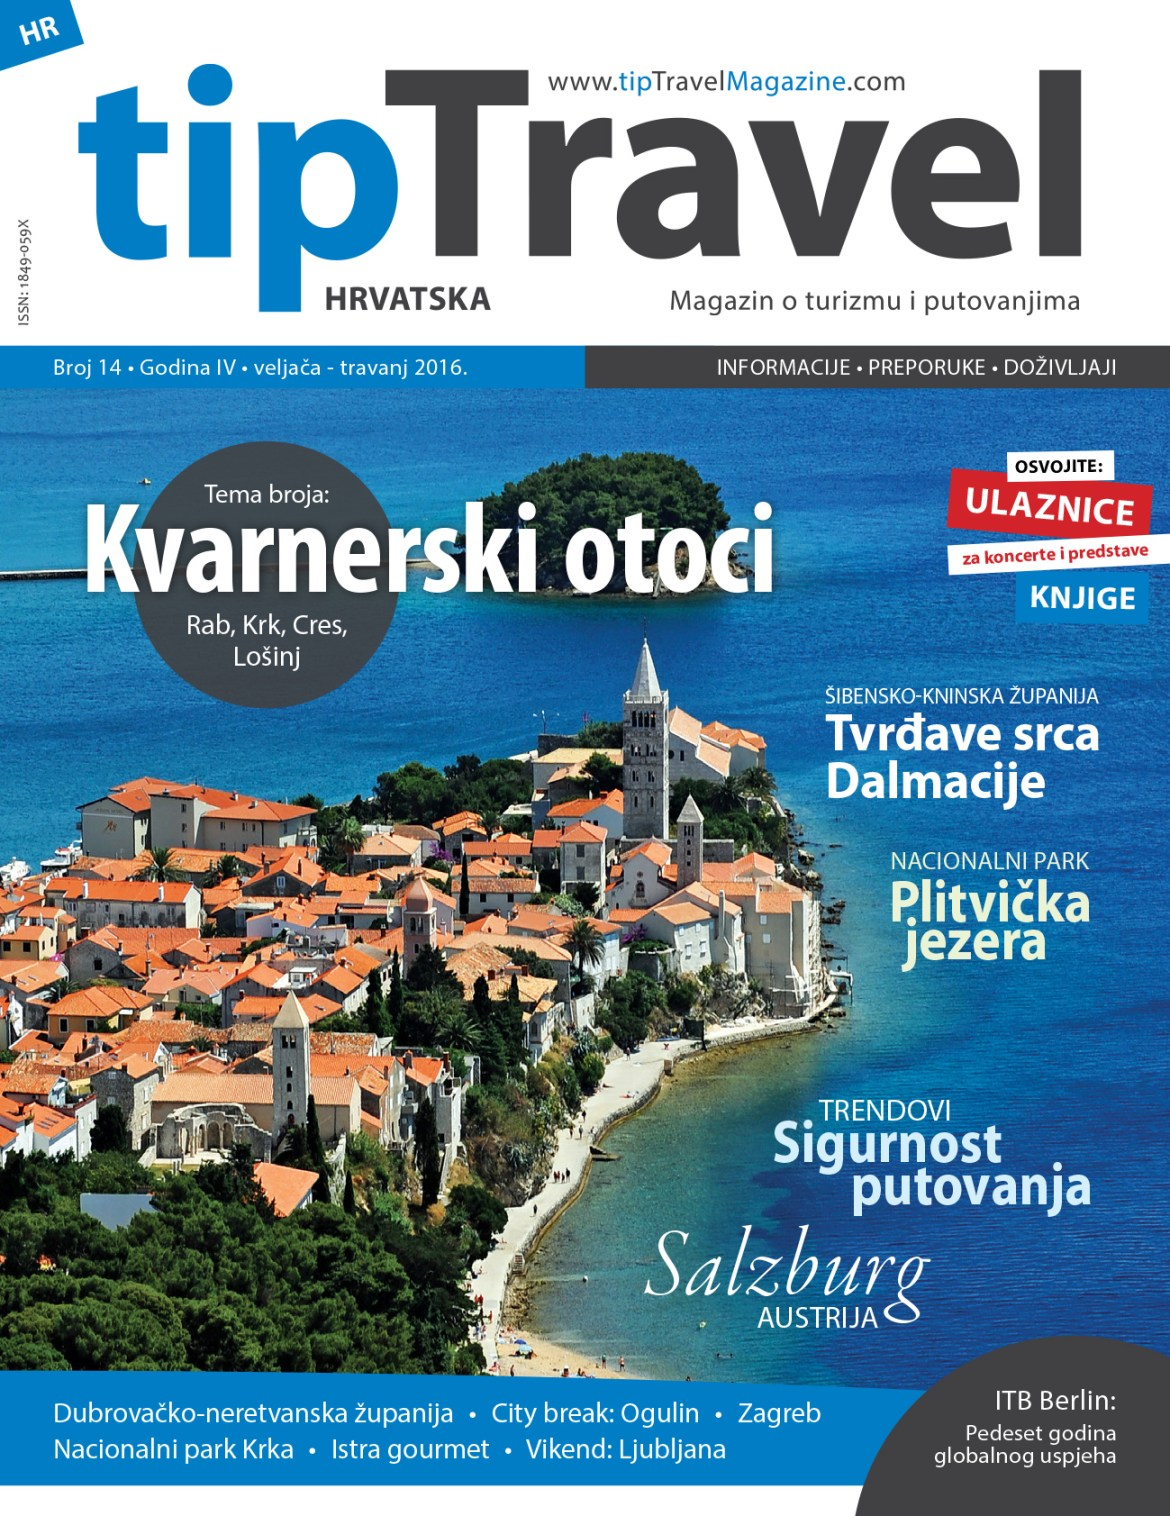 Cover - tipTravel magazine 014 HR